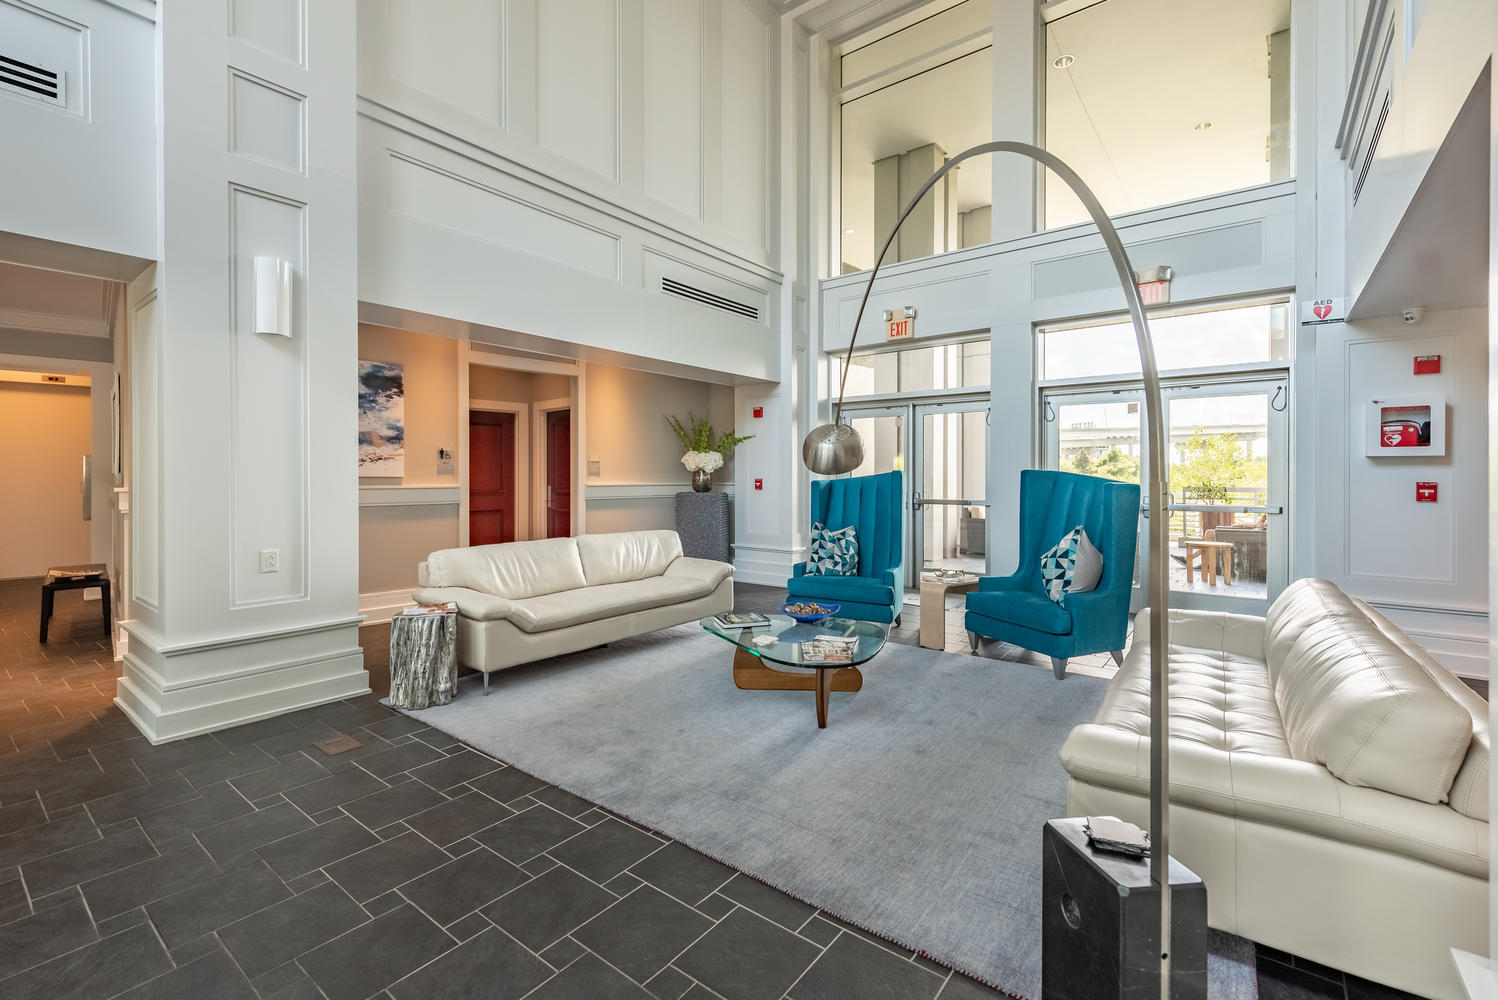 Tides Condominiums Condos For Sale - 238 Cooper River, Mount Pleasant, SC - 12